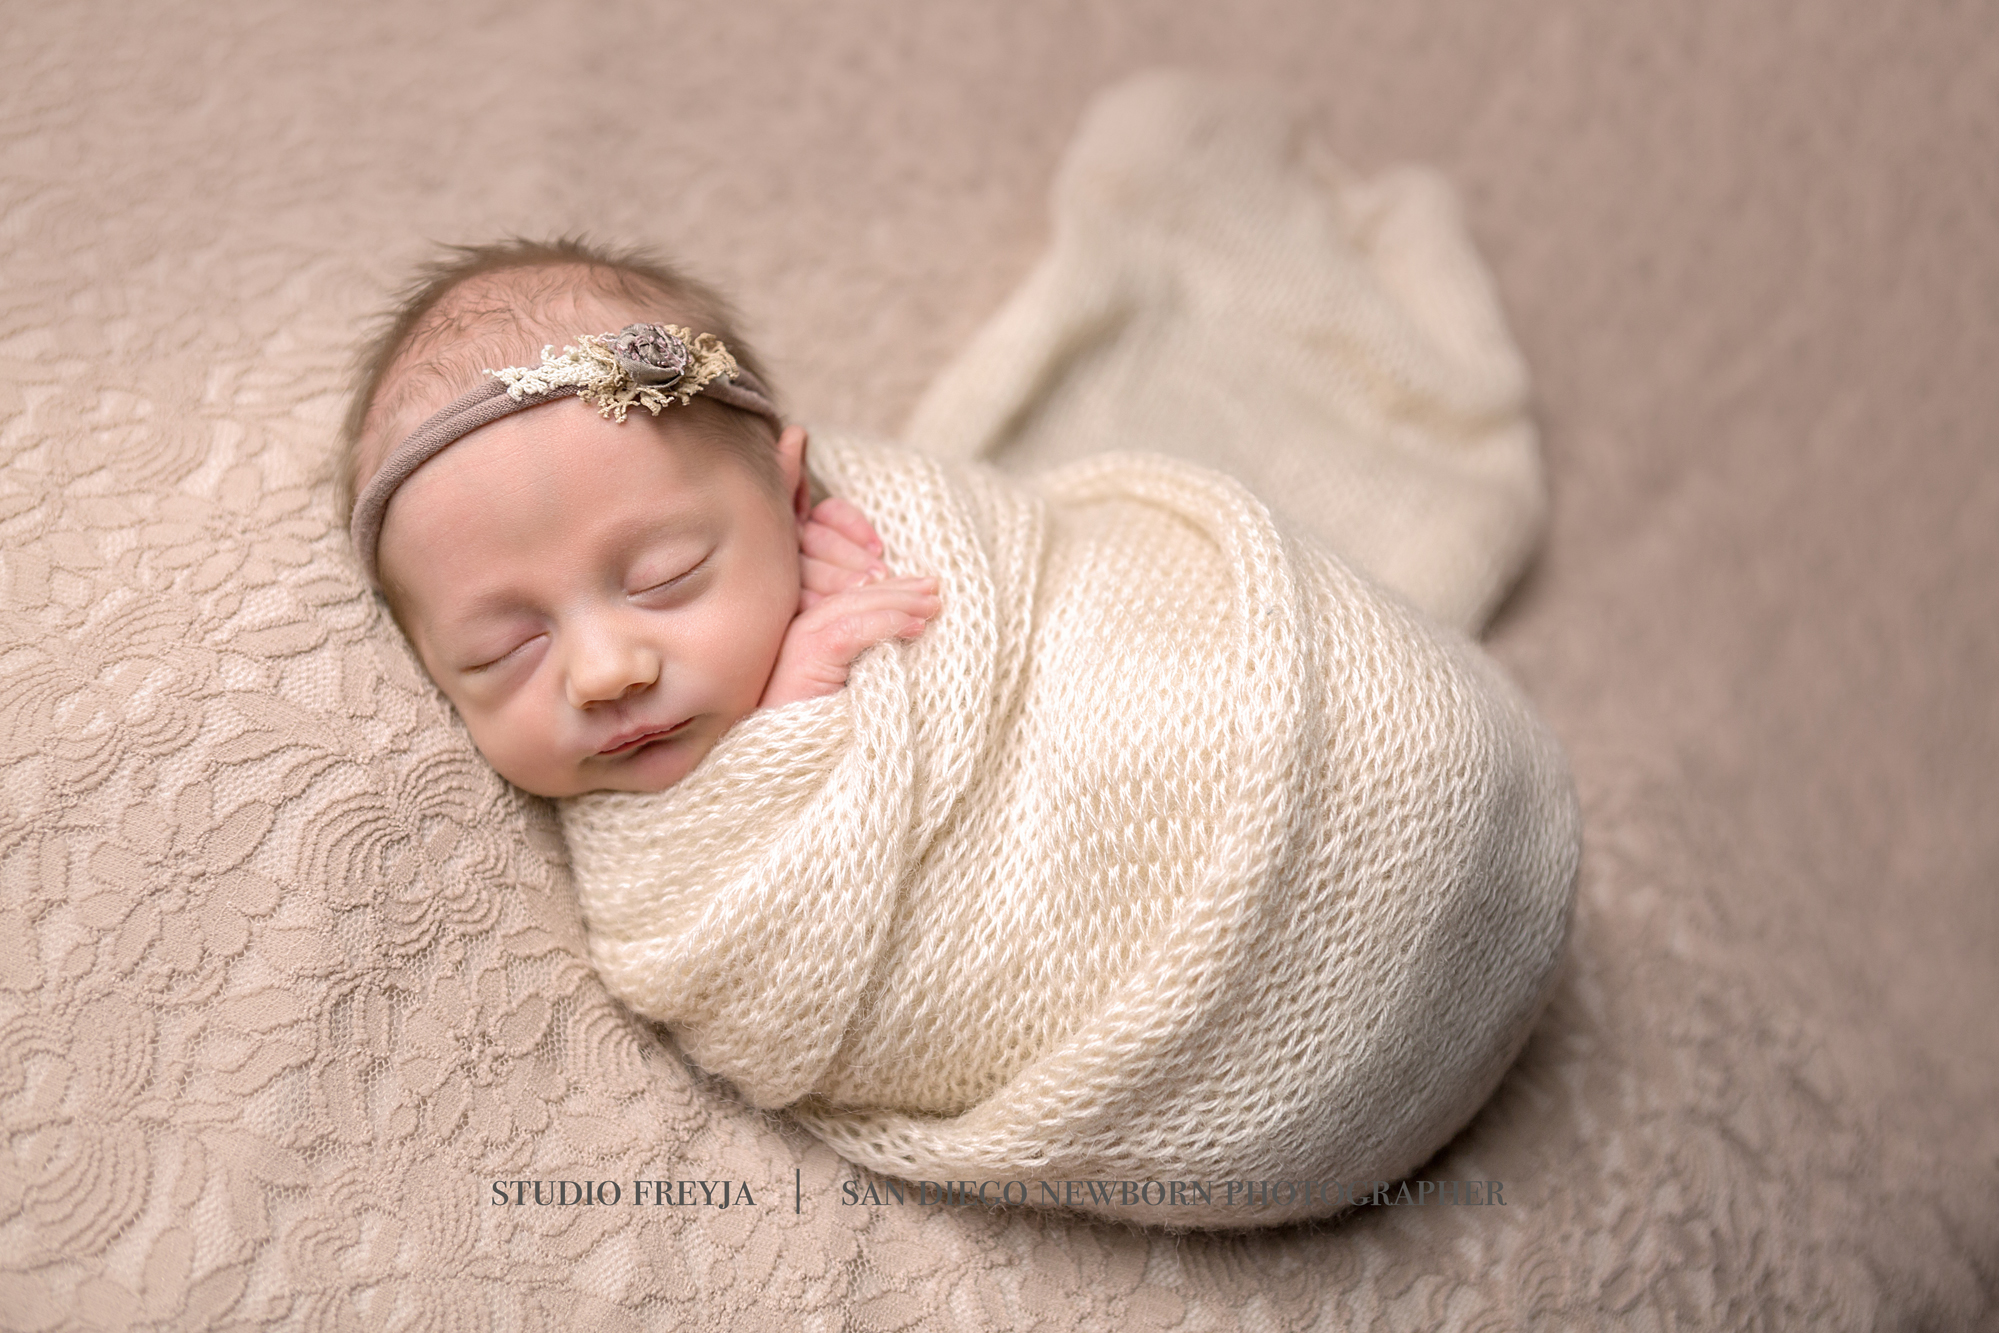 San Diego Newborn Photography Session